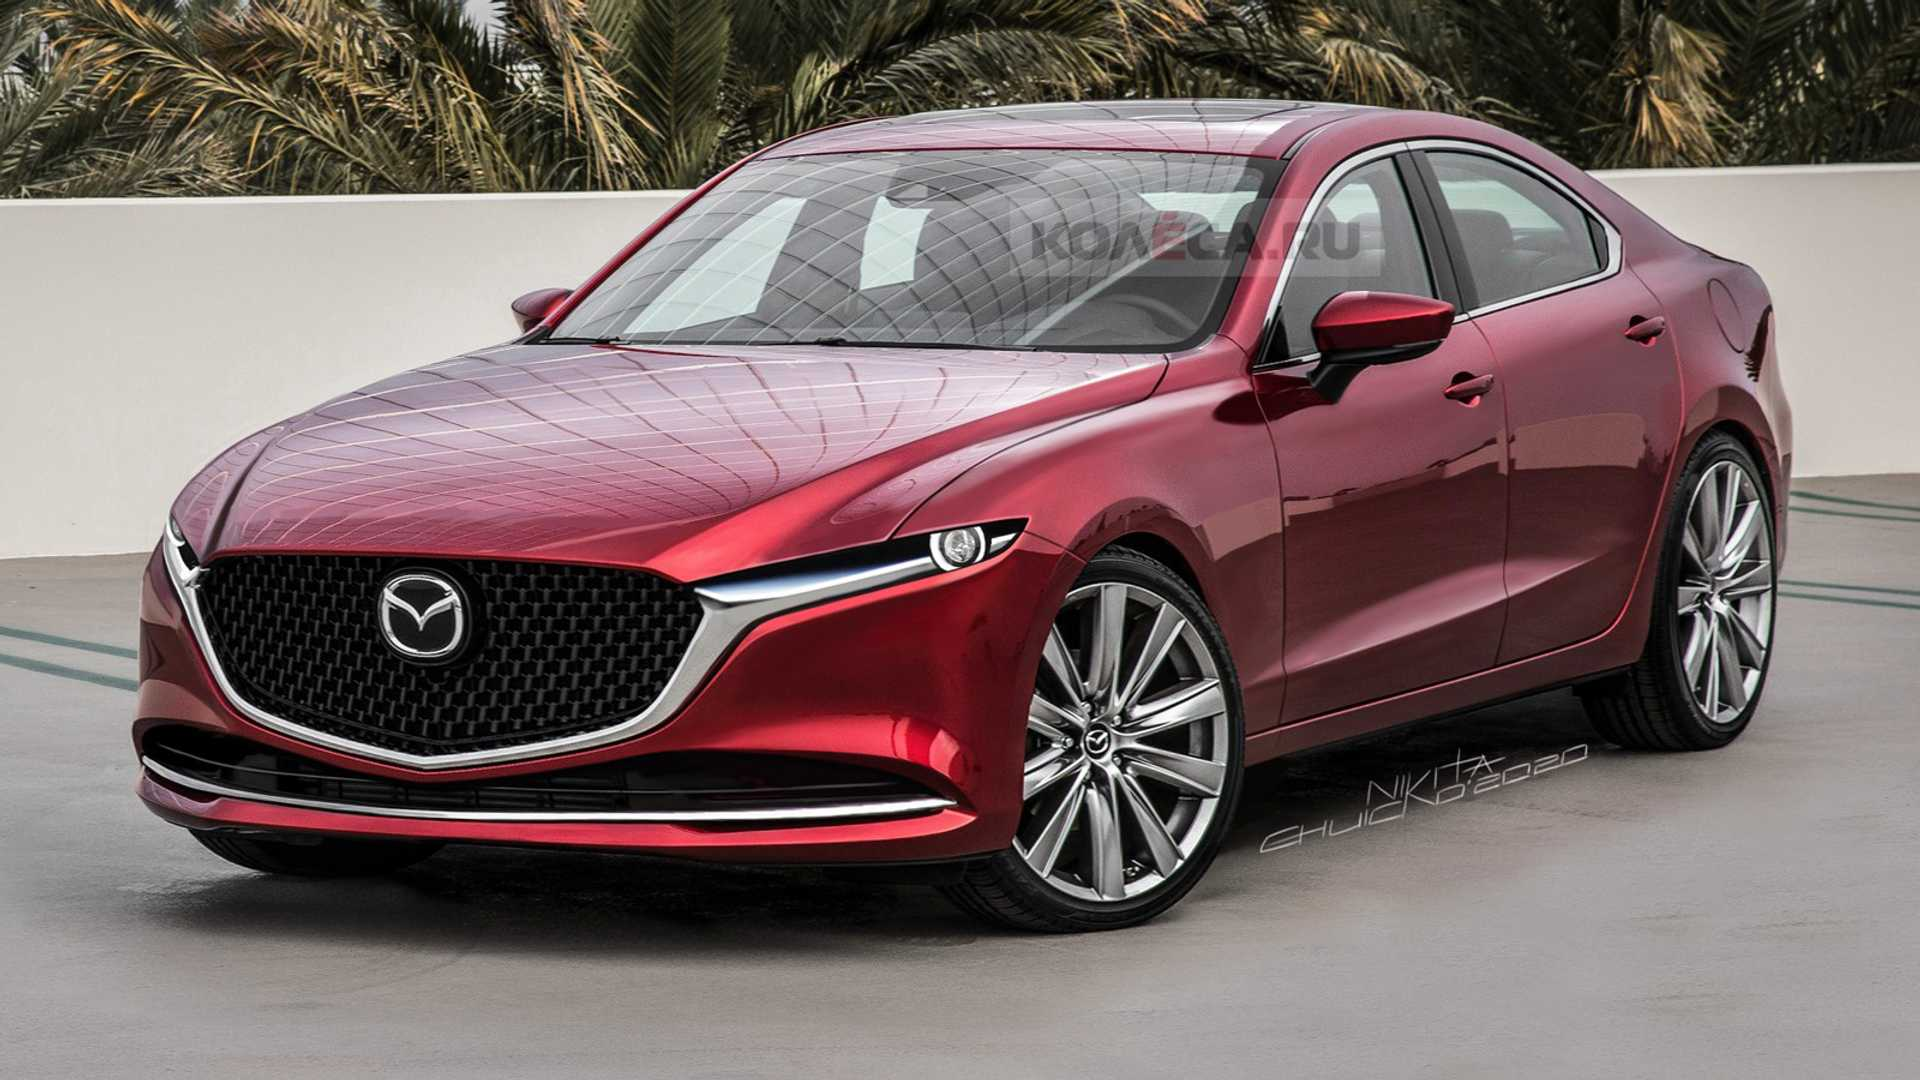 Rear Drive 2023 Mazda6 Rendered And We Like What We See